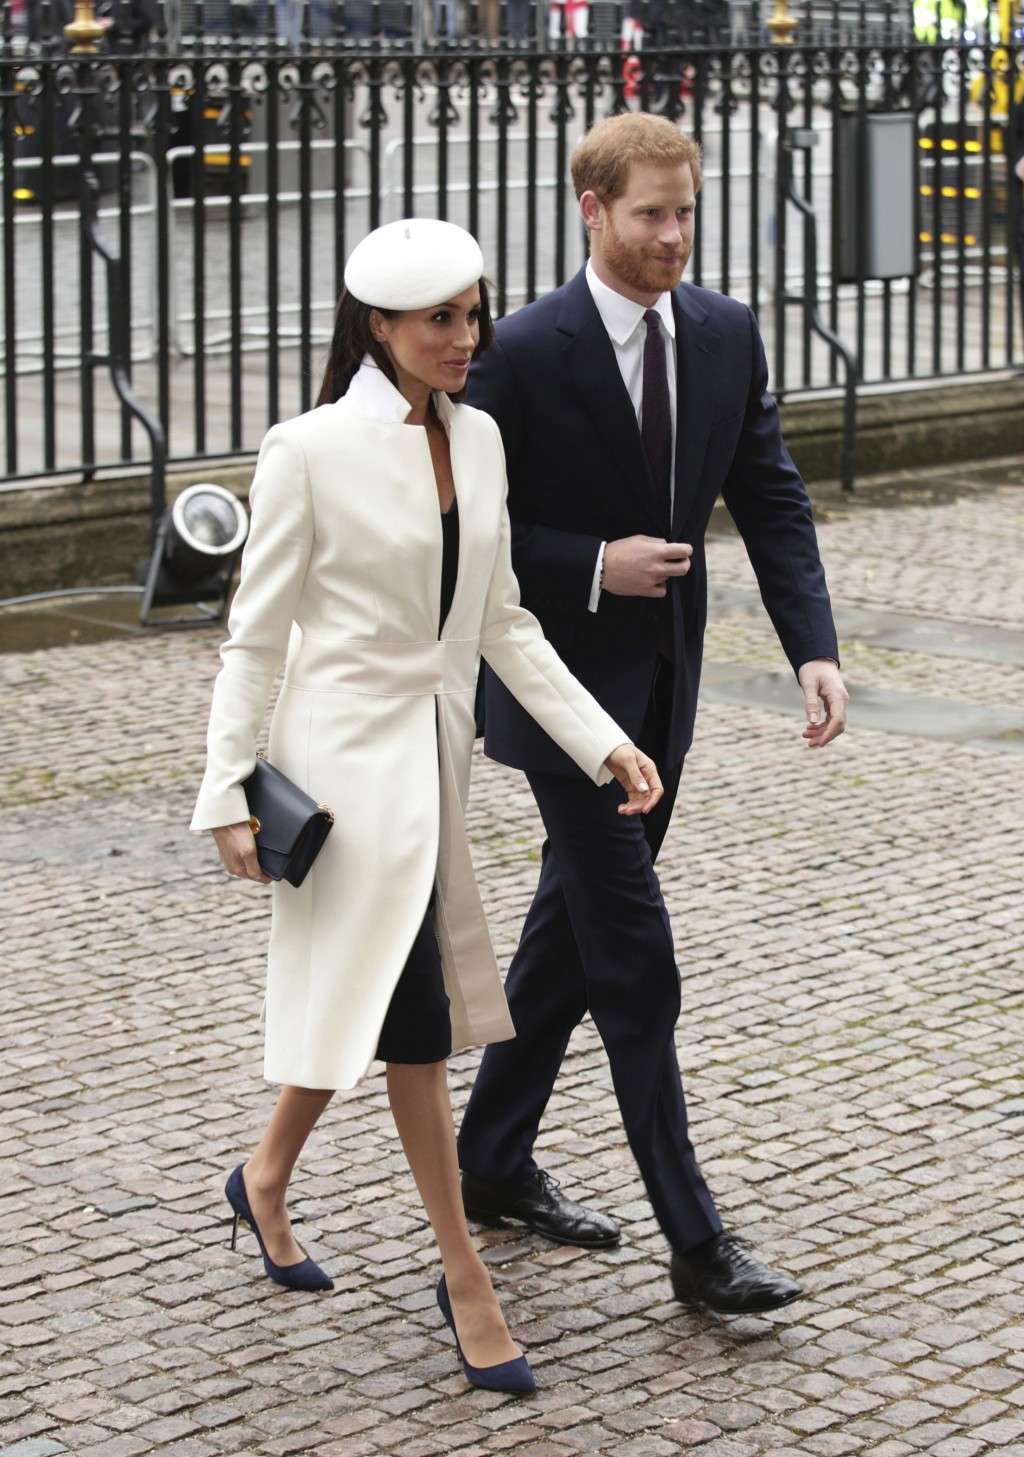 Britain's Prince Harry and Meghan Markle, arrive for the Commonwealth Service at Westminster Abbey in London, Monday March 12, 2018. (Yui Mok/PA via A